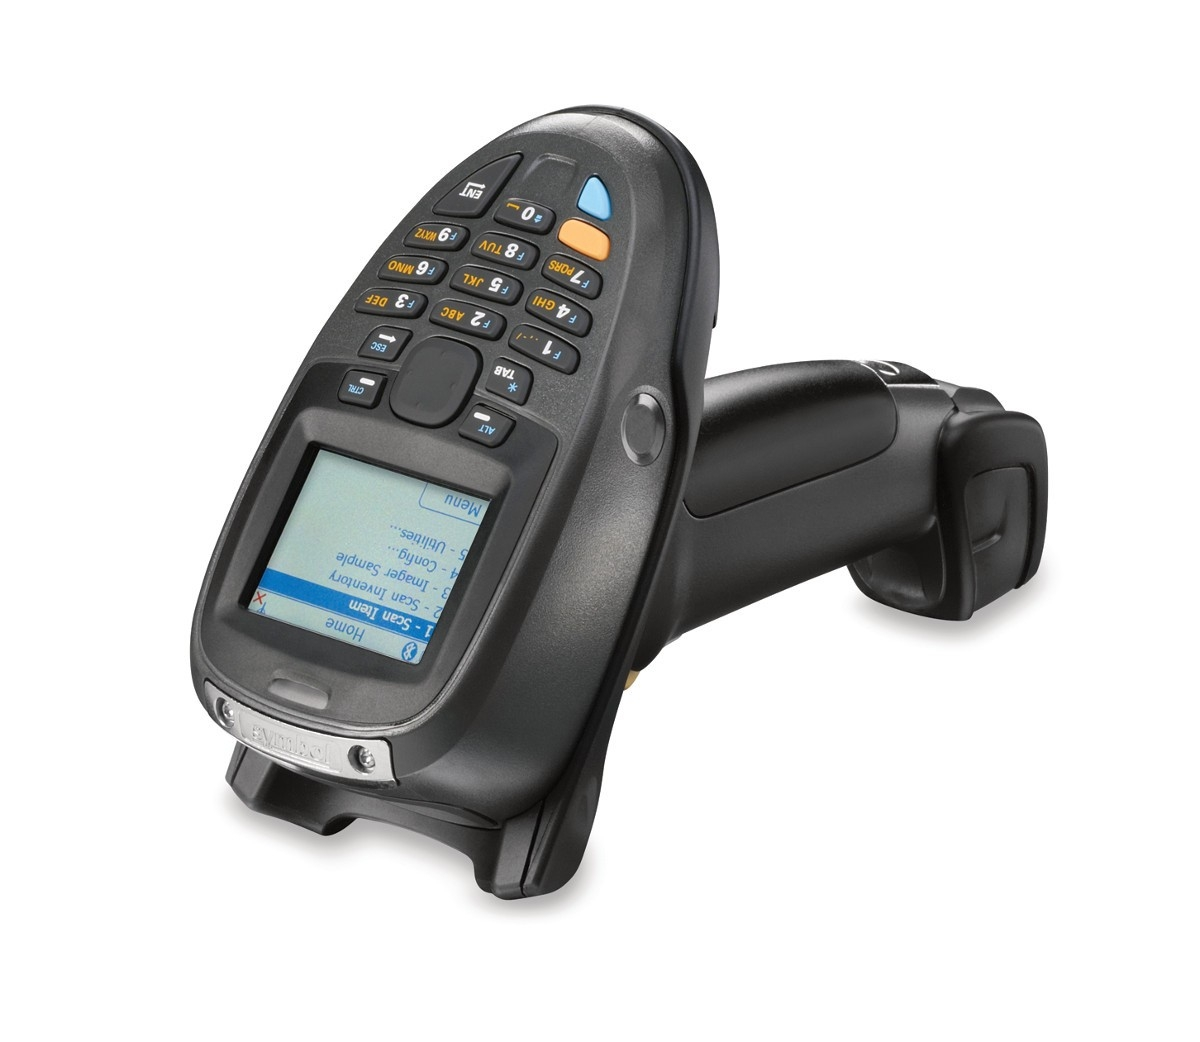 MT2000 Mobile Terminals Scanner Barcode Scanners in Delhi